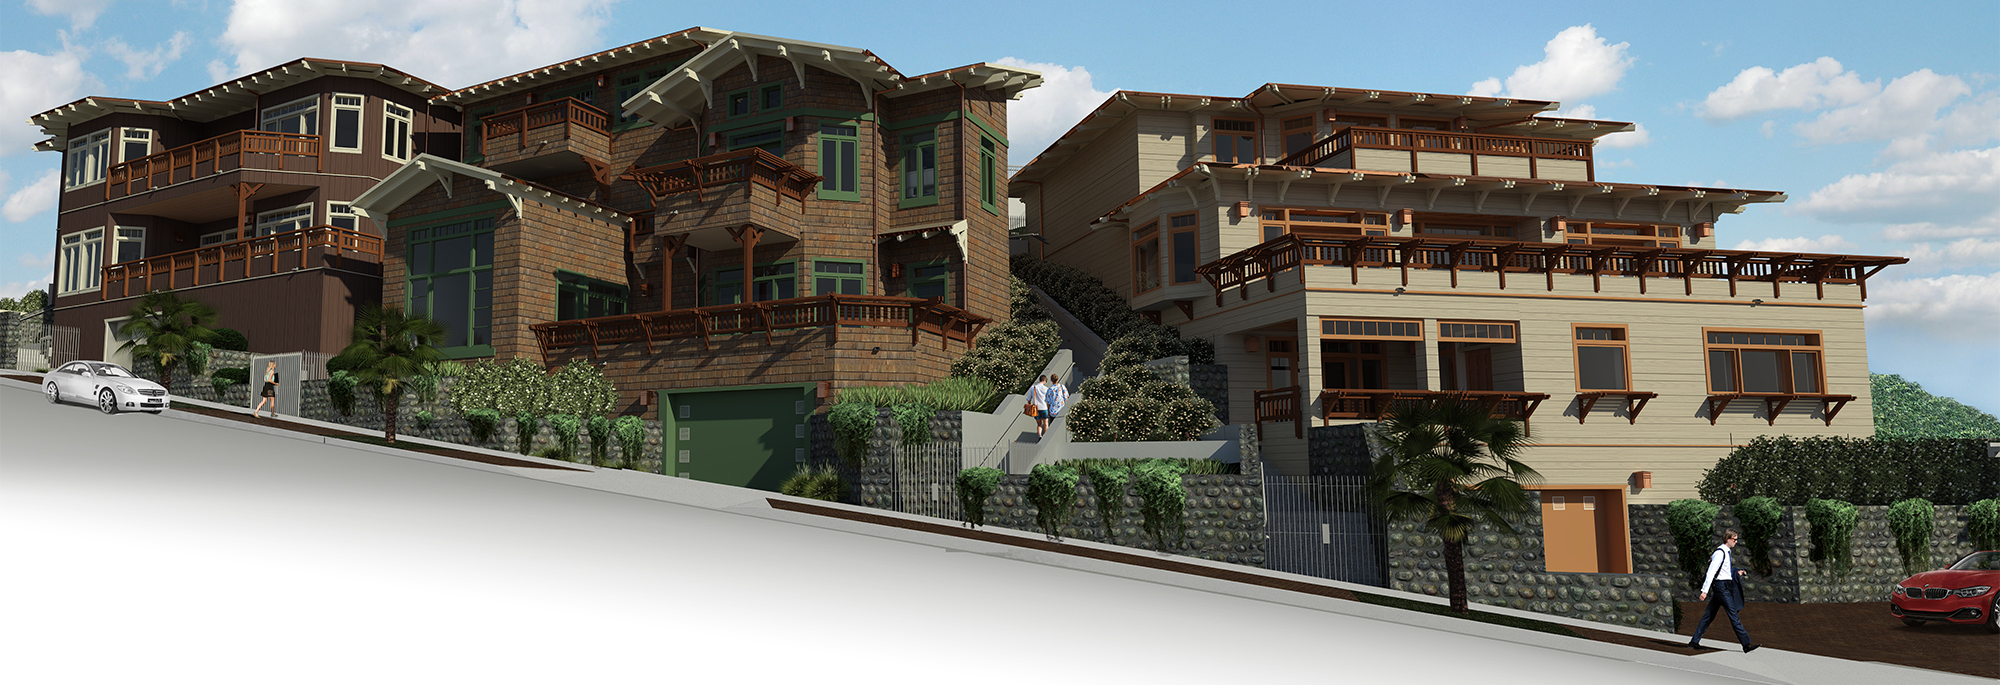 Green Dragon townhomes rendering